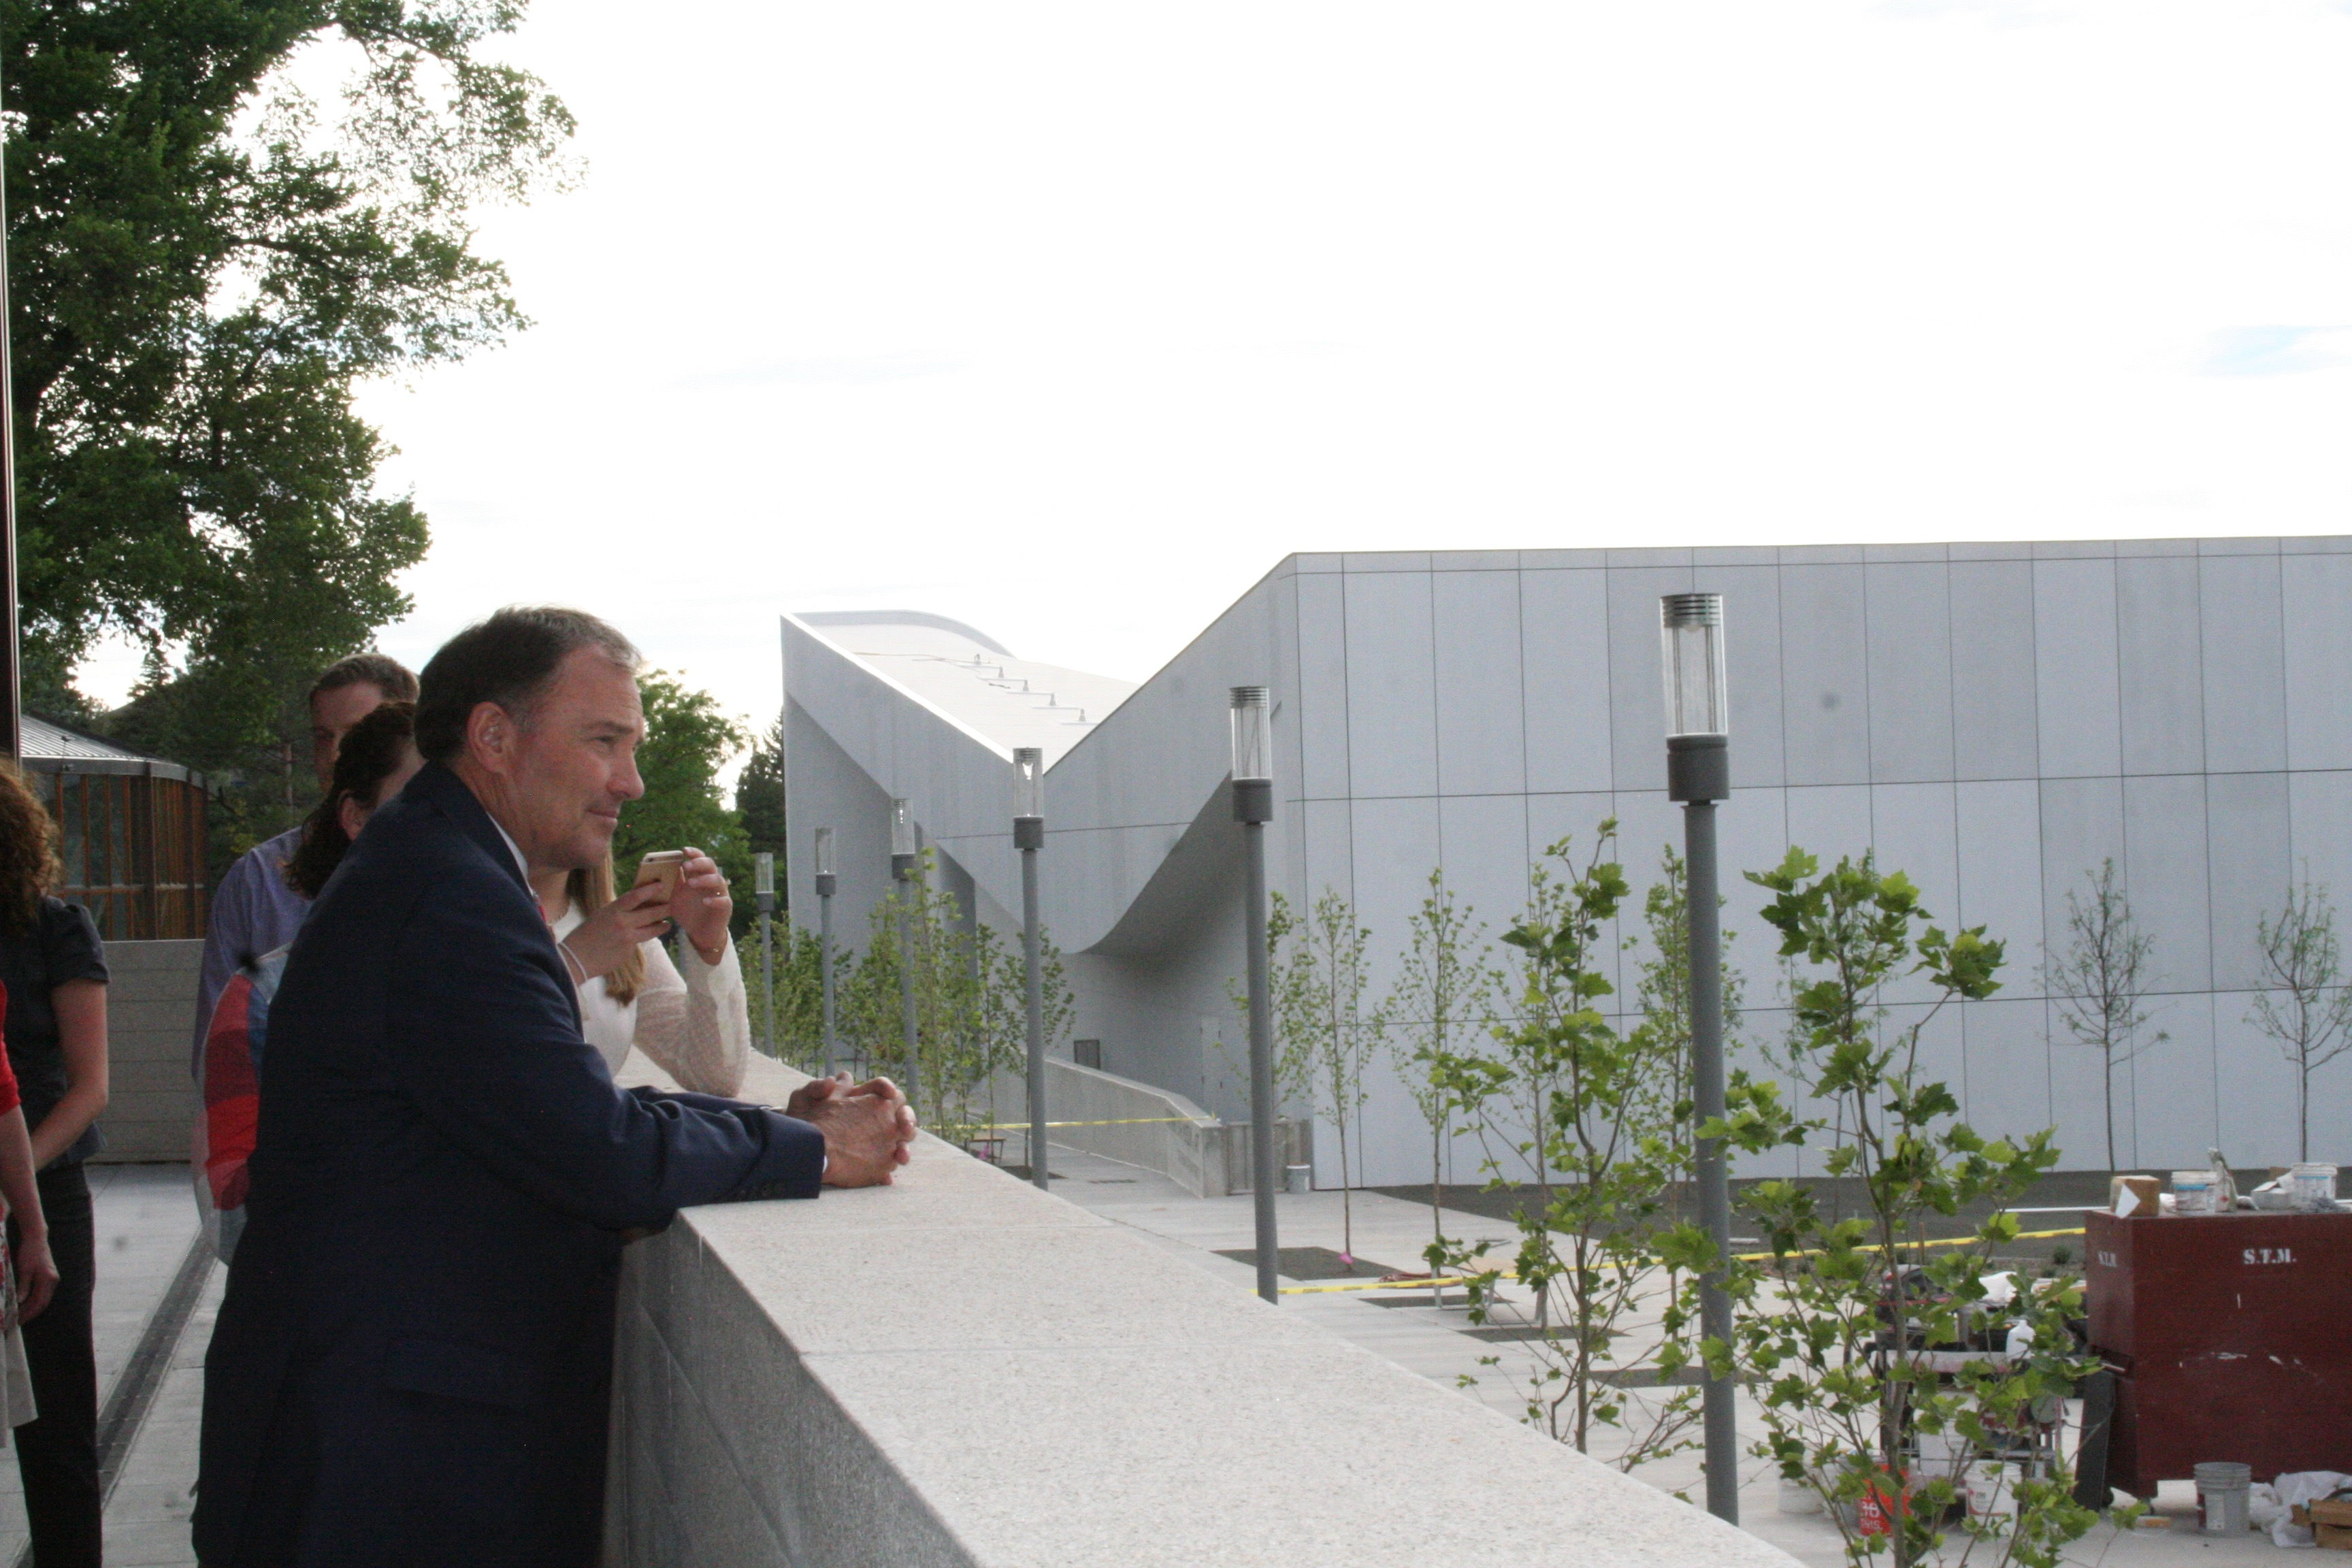 Governor Herbert looks at the new from the balcony of the new Shakespeare Theatre, Cedar City, Utah, June 9, 2016 | Photo by Kaleigh Bronson, St. George News / Cedar City News